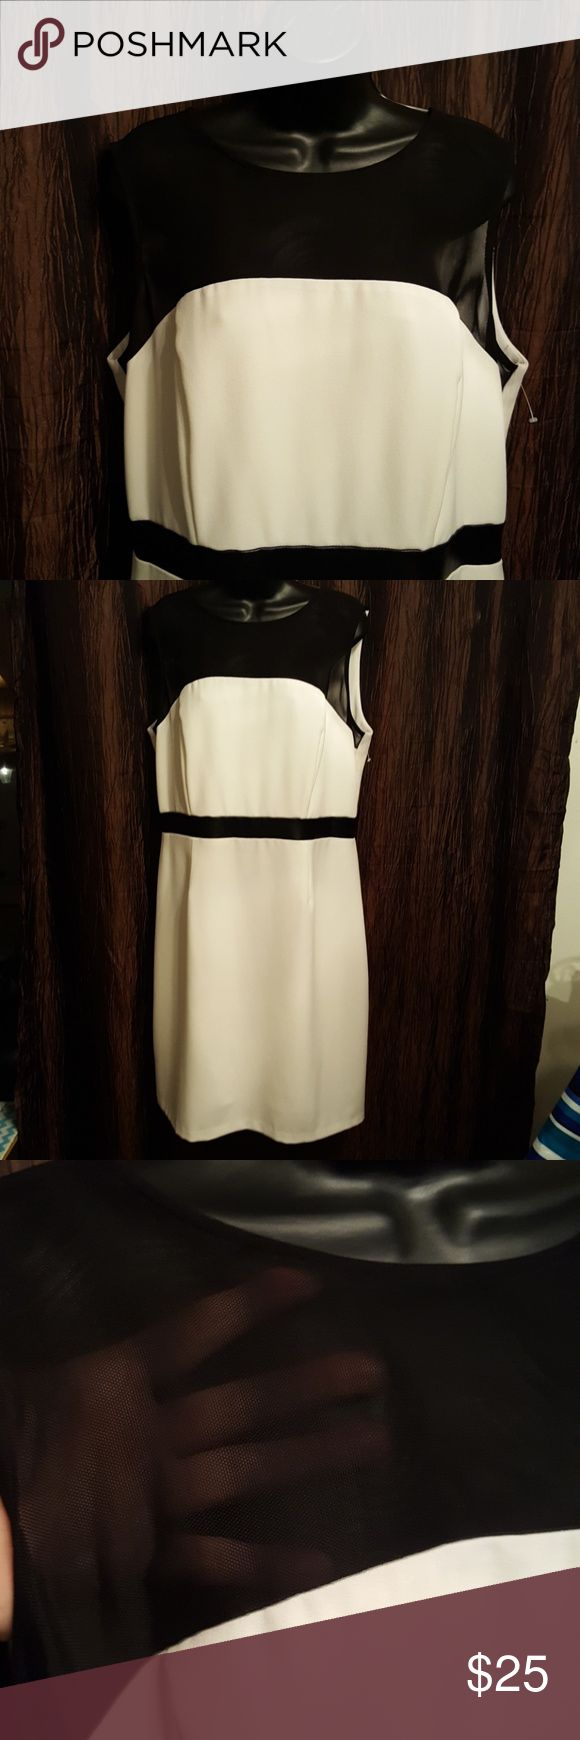 """Faux Leather NWOT~ Beautiful White & Black Fully lined Sleeveless Dress. Zipper in Back. Faux leather trim. Length measure shoulder to hem 39"""" Bust measures up too 40 SANDRA DARREN Dresses Midi"""